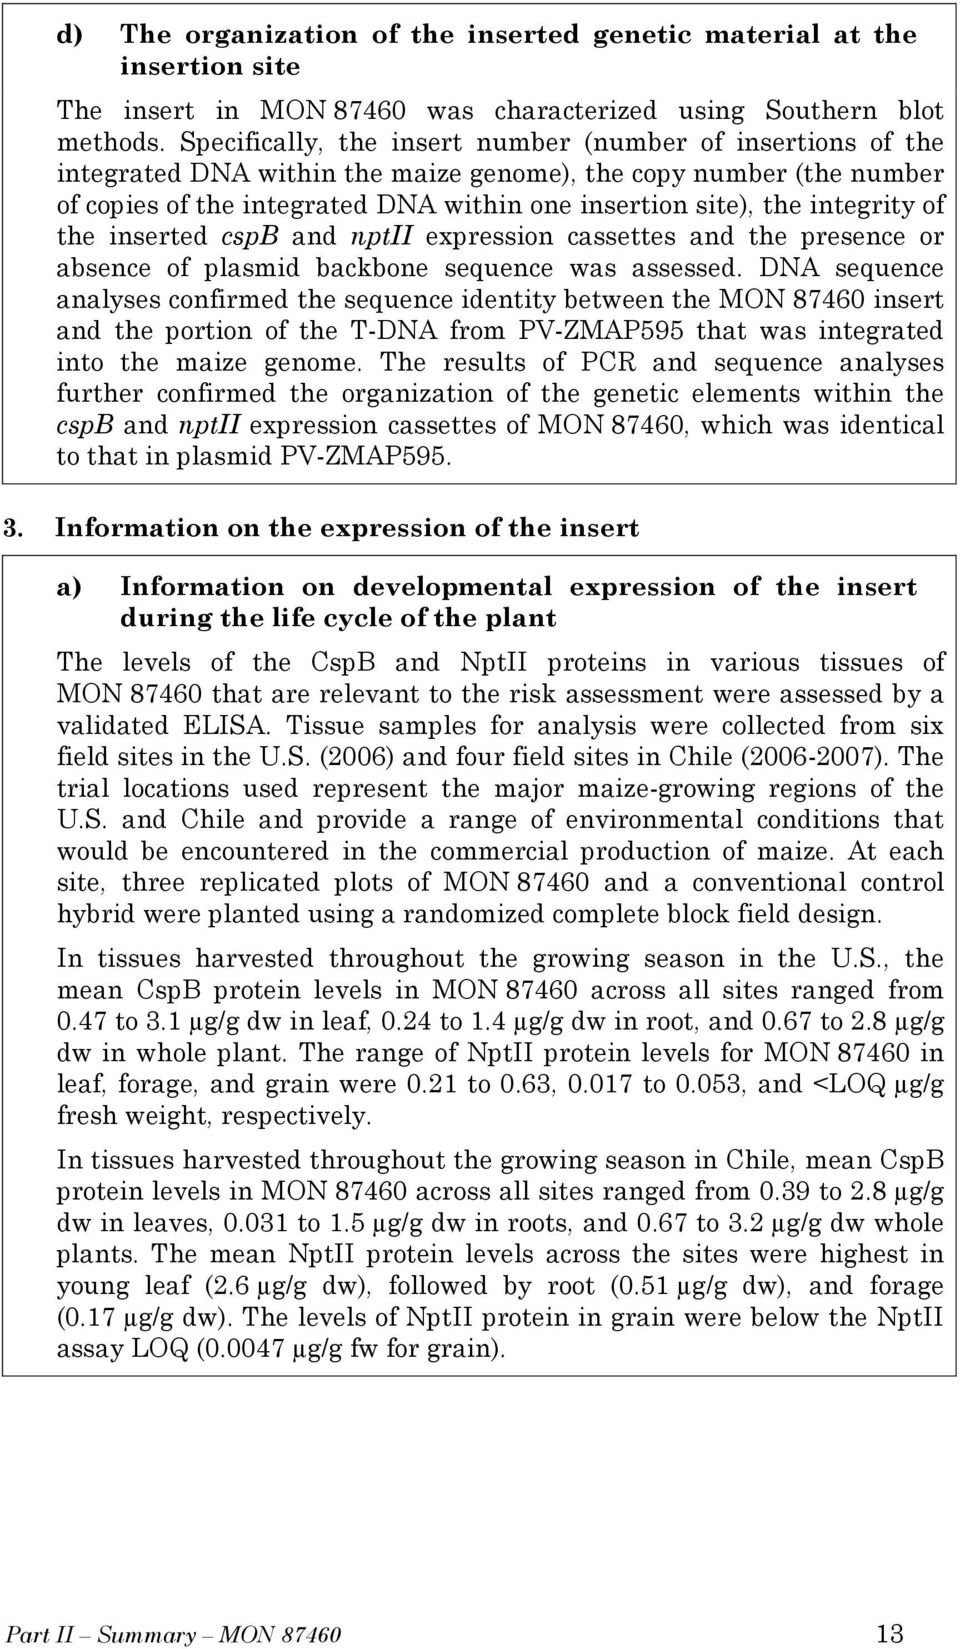 integrity of the inserted cspb and nptii expression cassettes and the presence or absence of plasmid backbone sequence was assessed.